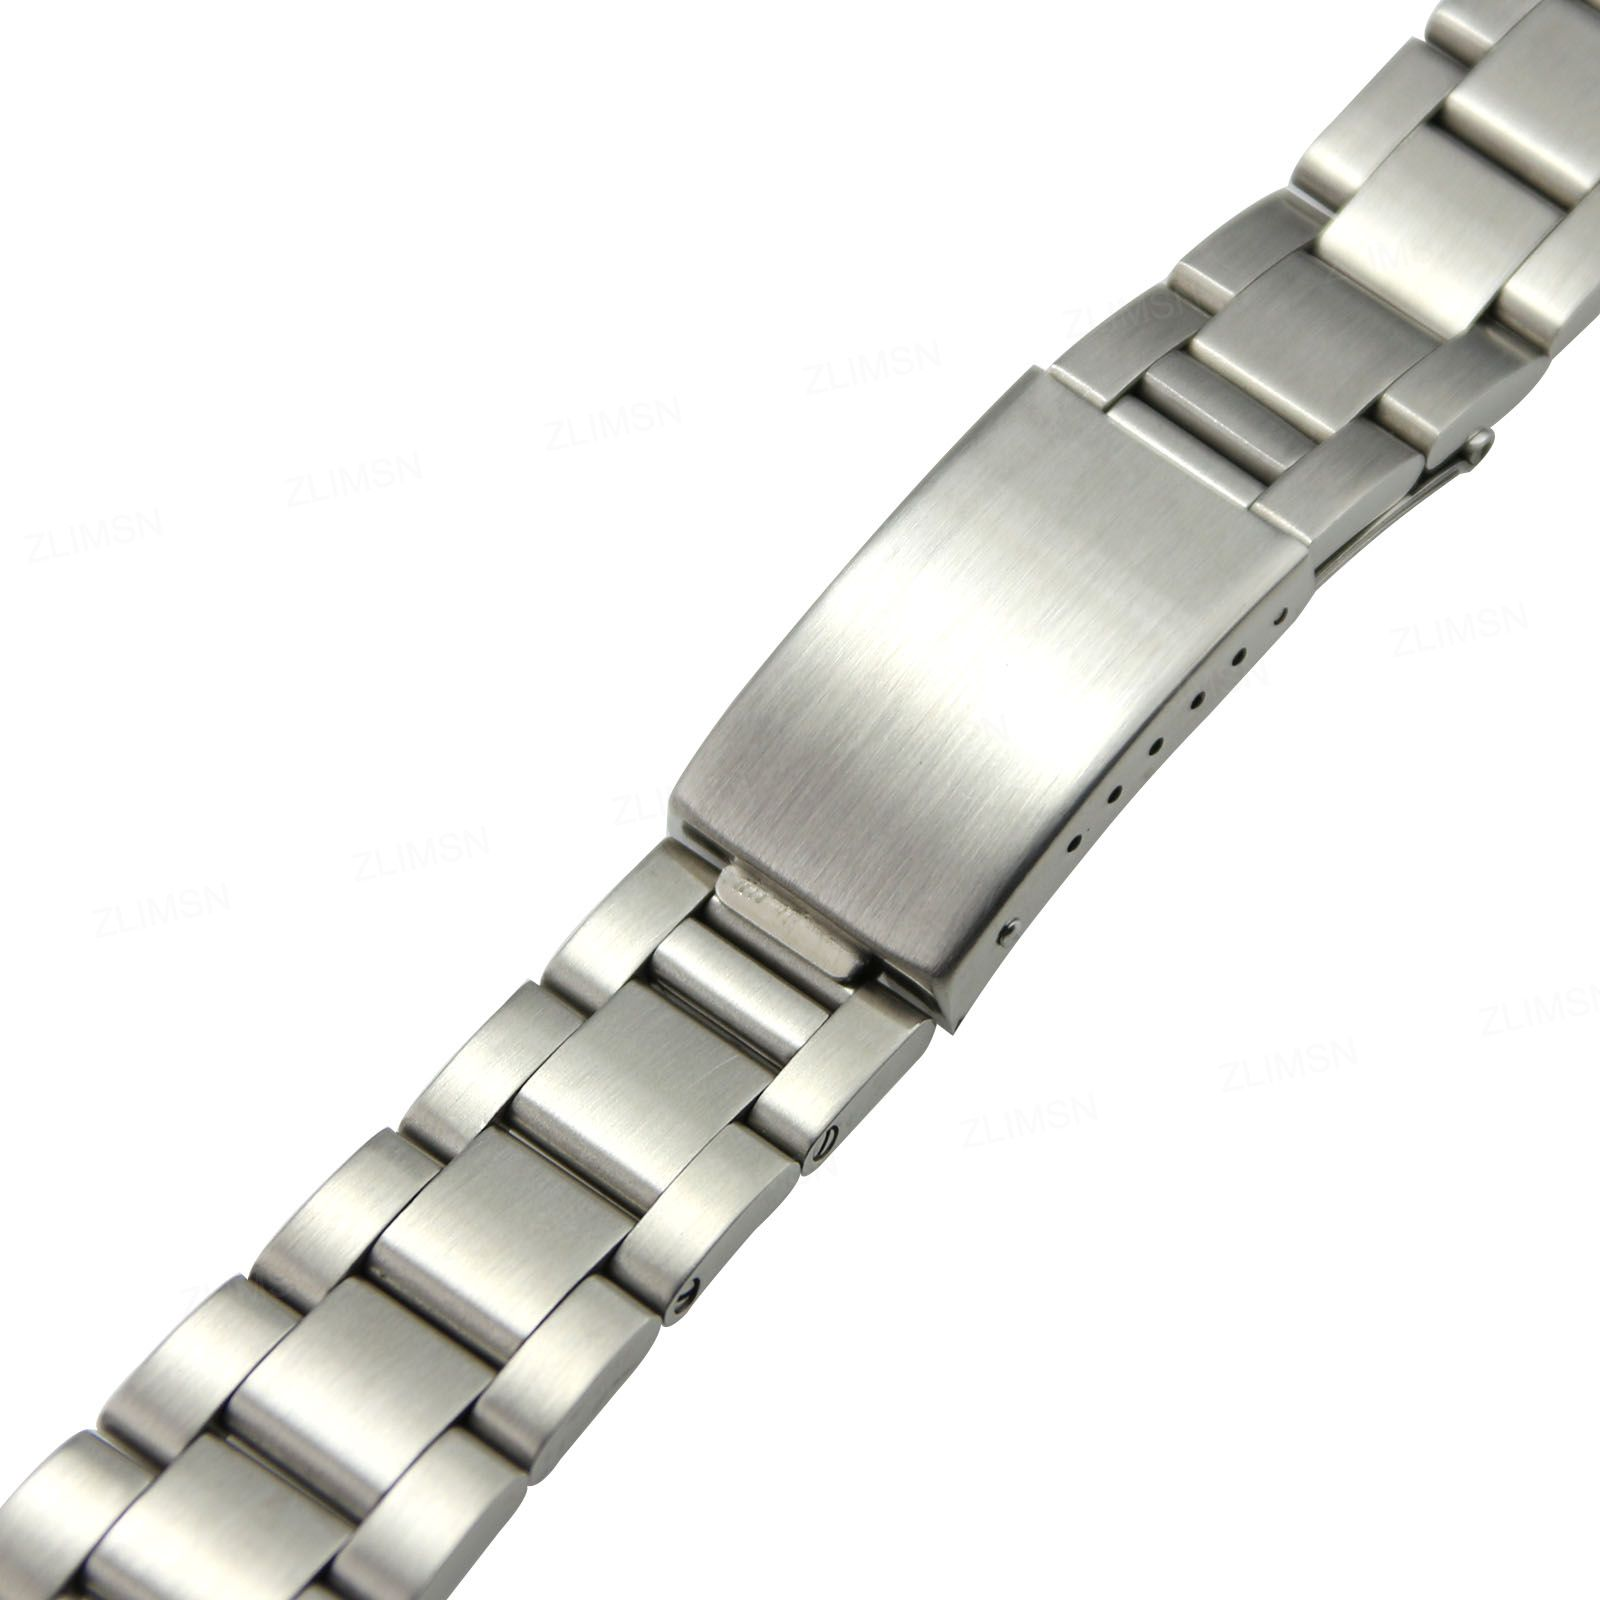 High End Stainless Steel Flatware Zlimsn Stainless Steel Watchbands Replacement Silver 18mm